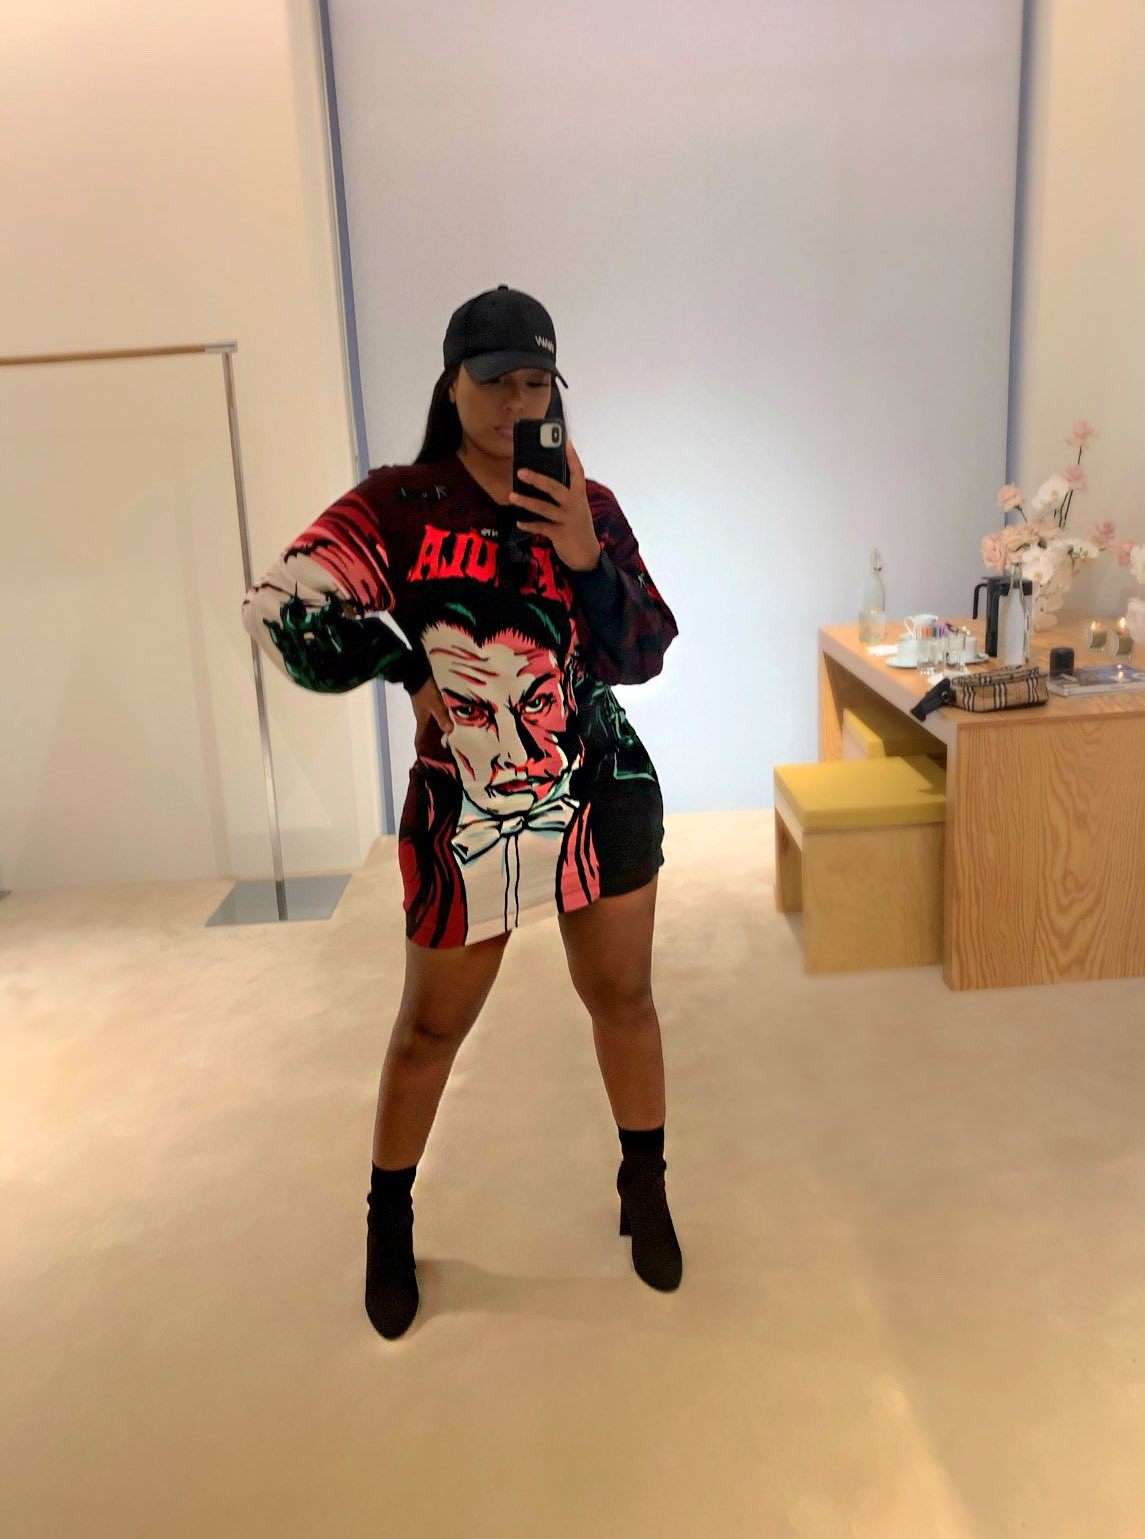 Burna Boy and his girlfriend Stefflon Don pack on the PDA in new photo